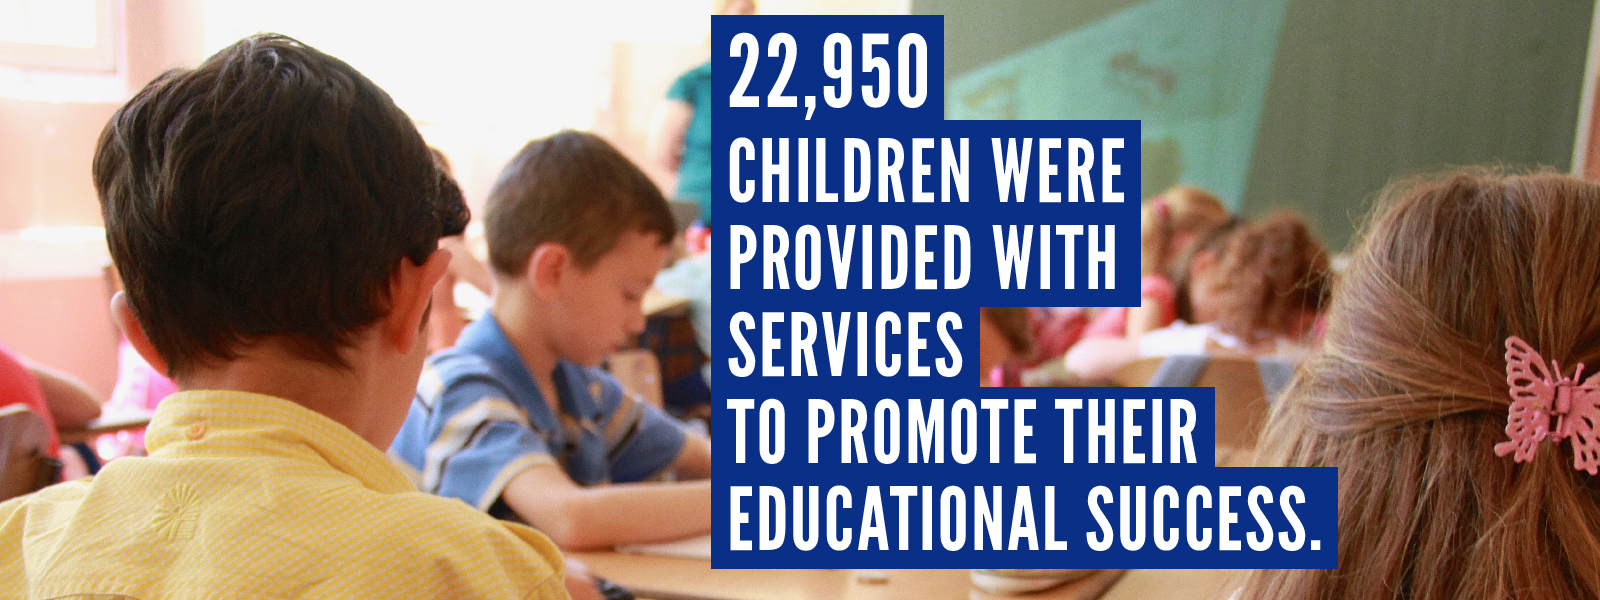 22,950 children were provided with services to promote their educational success